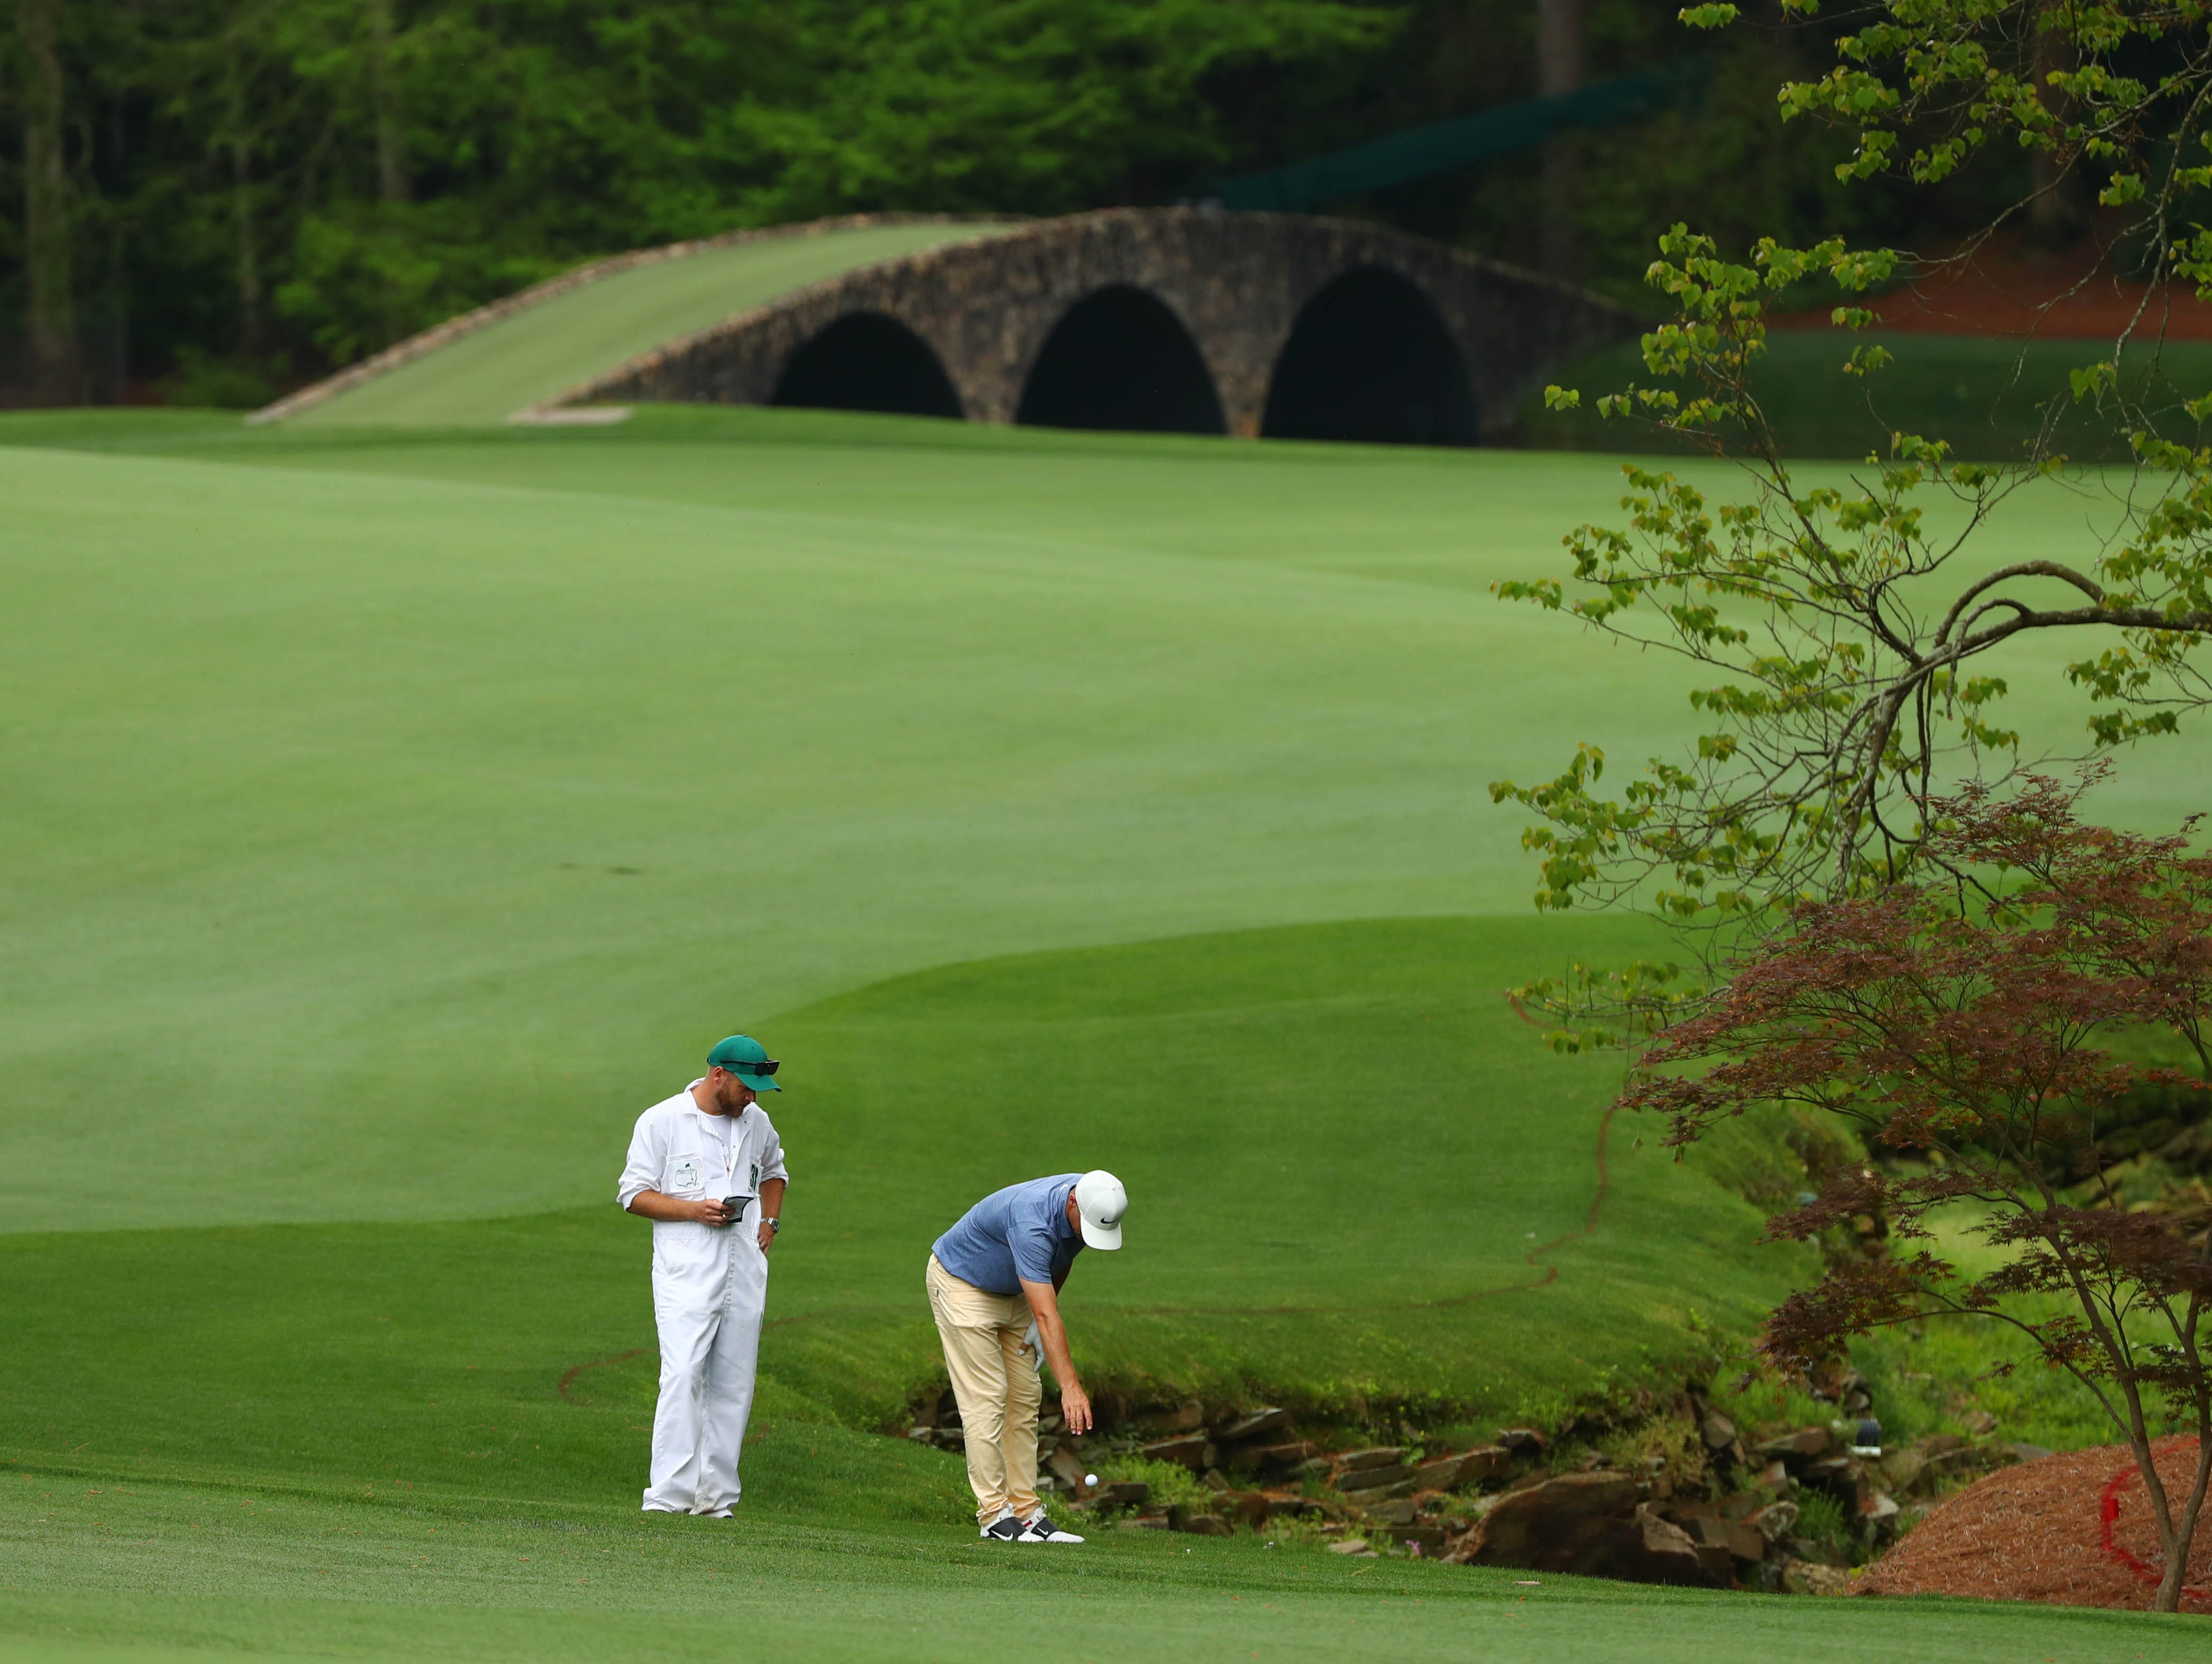 Apr 12, 2019; Augusta, GA, USA; Alex Noren takes a drop on the 13th hole with the Hogan Bridge in the background during the second round of The Masters golf tournament at Augusta National Golf Club. Mandatory Credit: Rob Schumacher-USA TODAY Sports